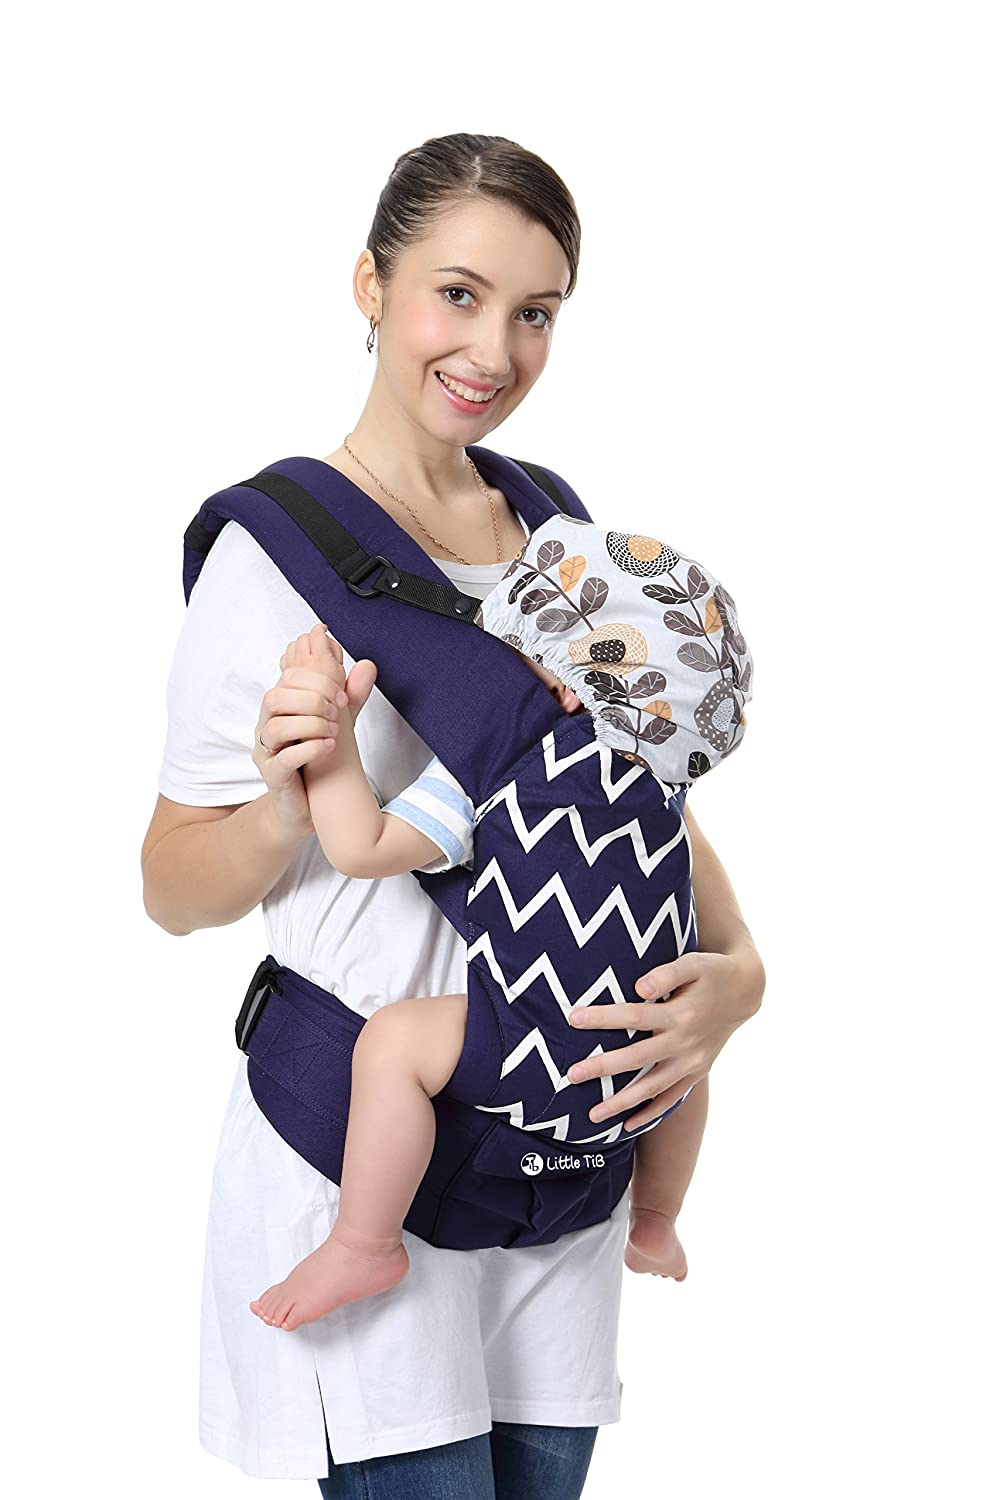 Little TiB Ergonomic Baby Carrier, 360 All Position, wrap, Backpack for Men and Women, Organic, All Season, Carriers for Newborn, Kids with Cover Accessories